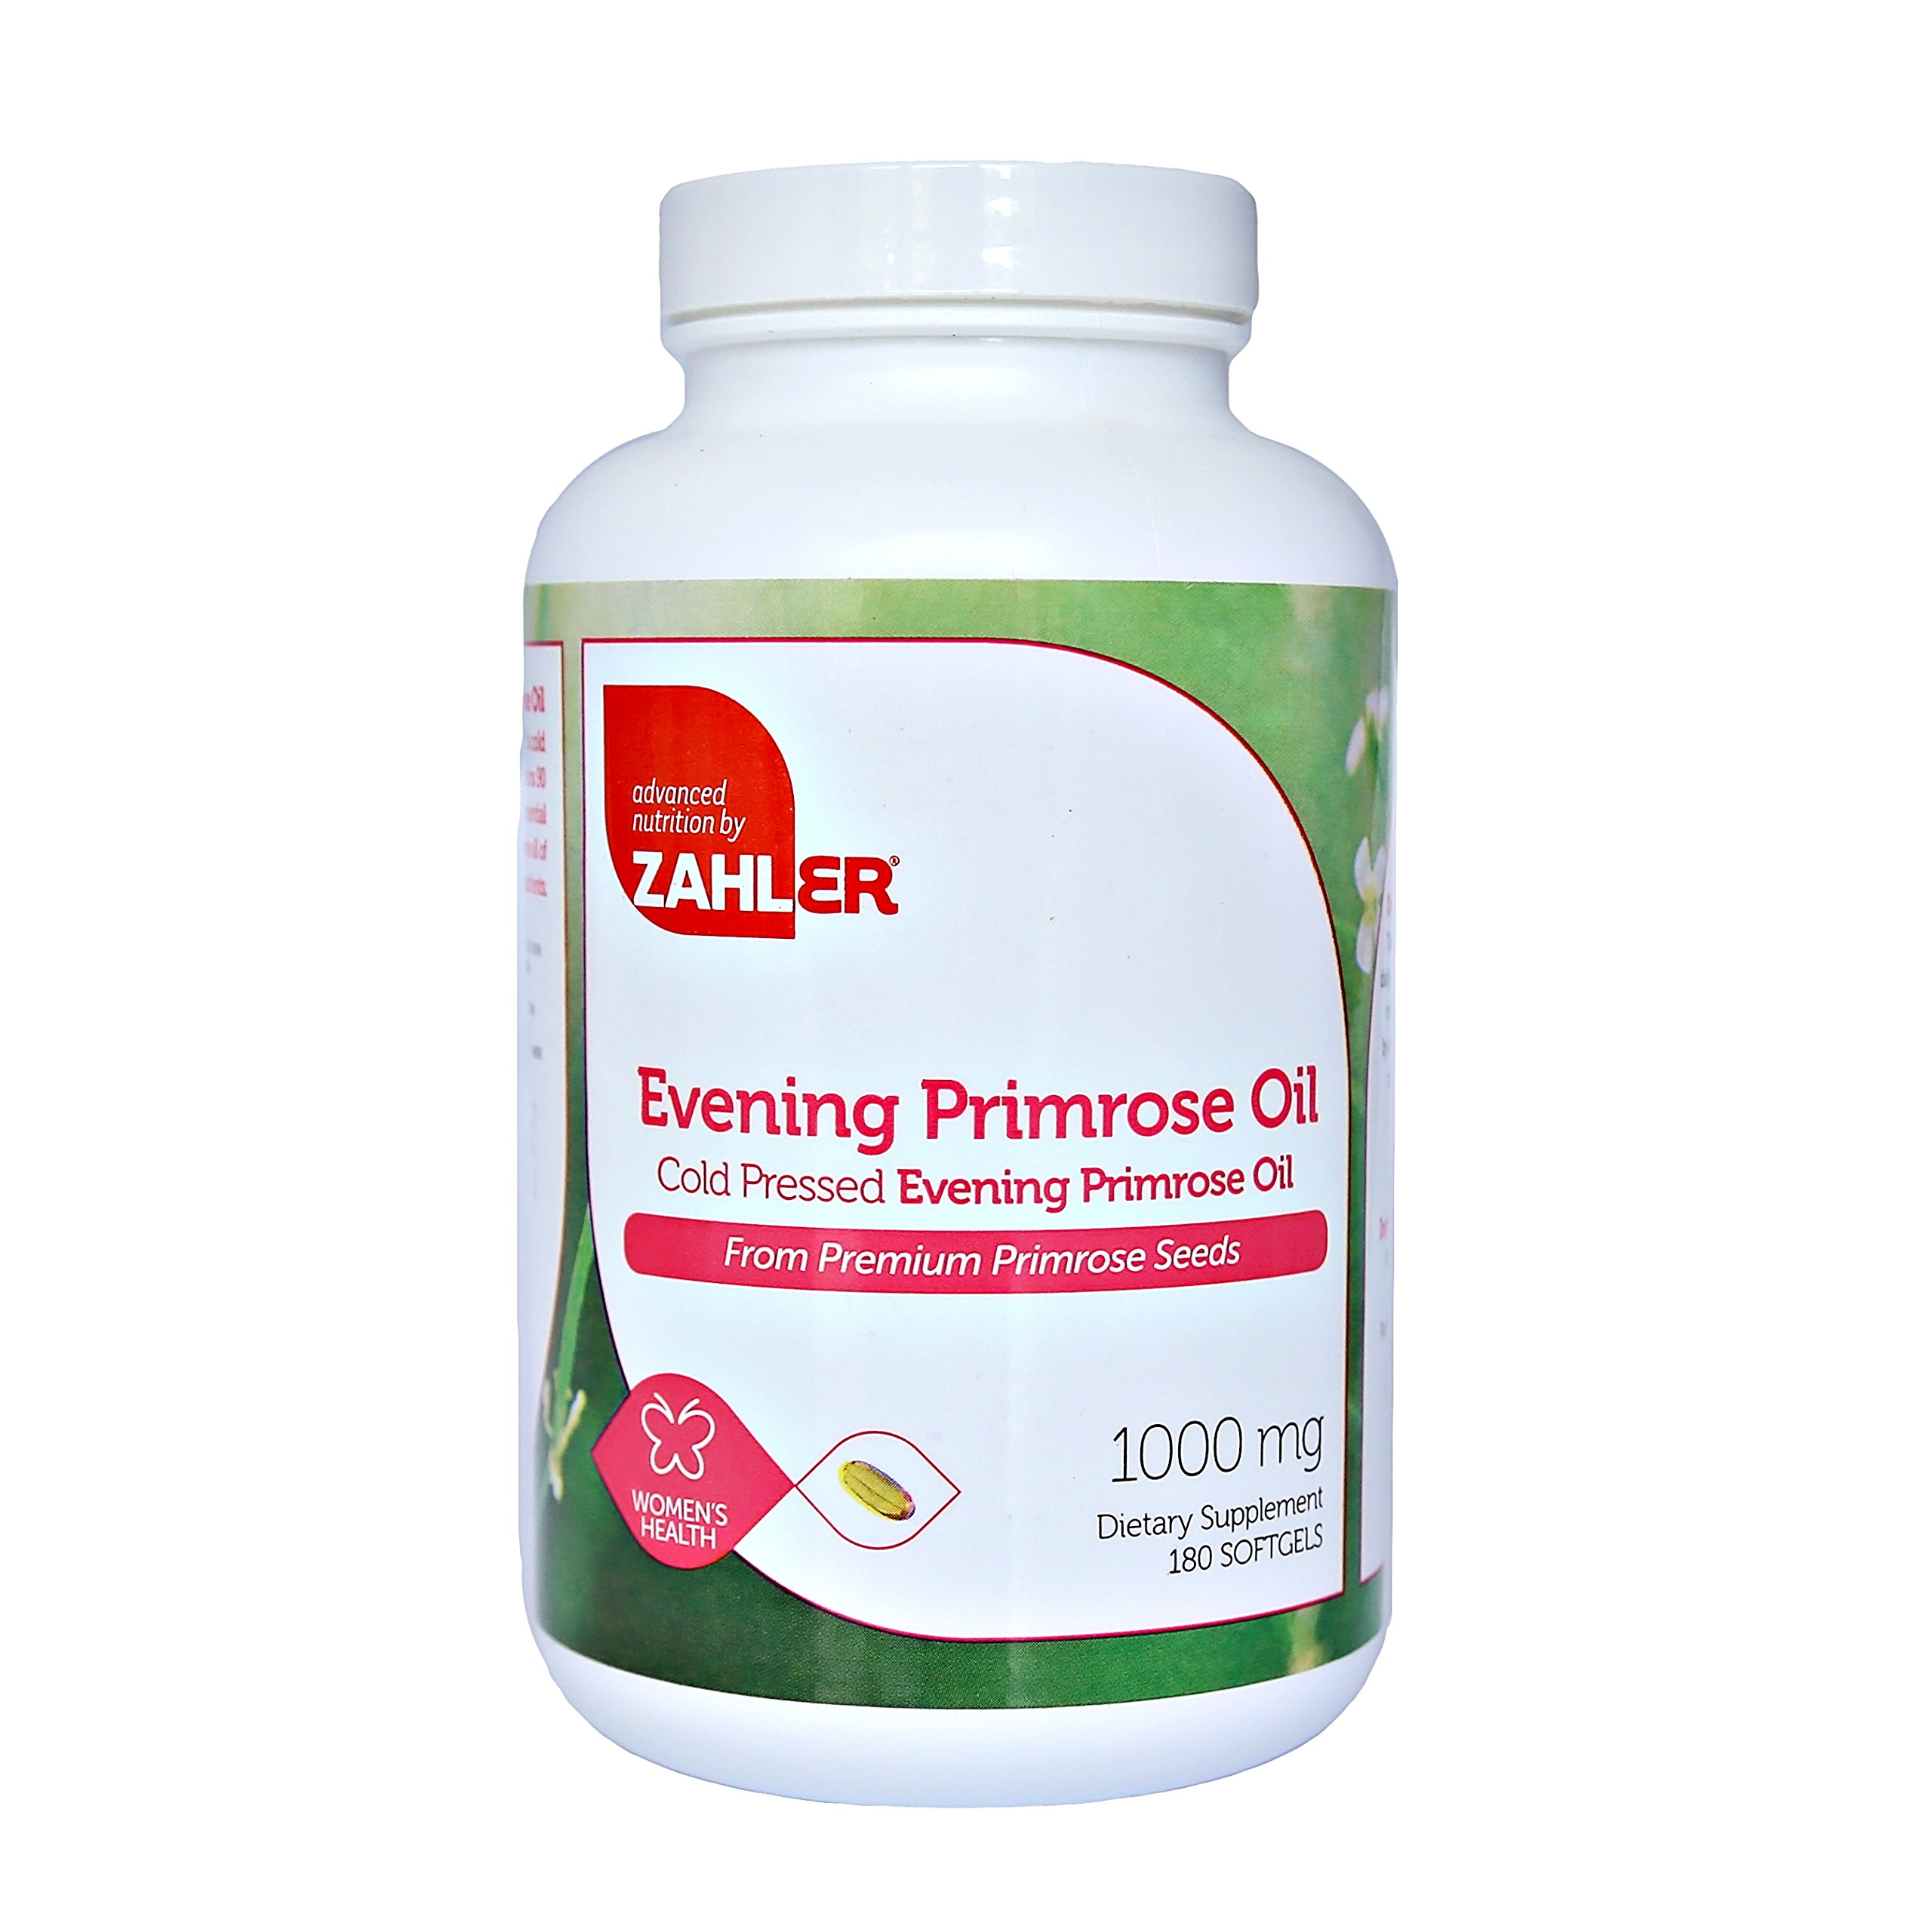 Zahler Evening Primrose Oil, Cold Pressed GLA Rich Supplement, Alleviates Symptoms of PMS and Menopause, Certified Kosher (180 Softgels) by Advanced Nutrition by Zahler